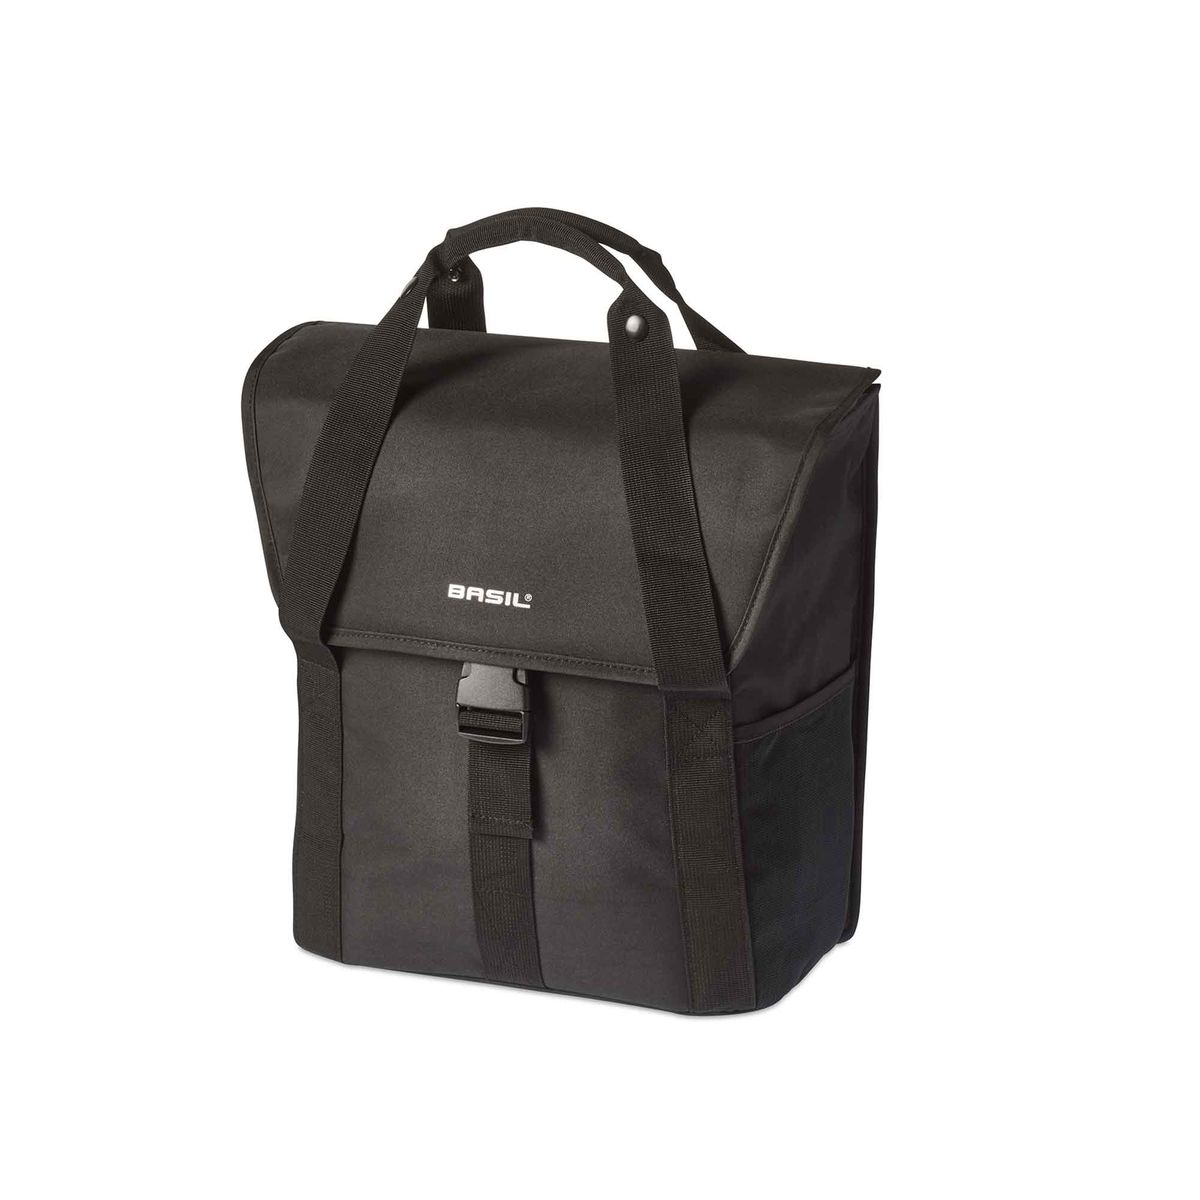 GO SINGLE BAG pannier